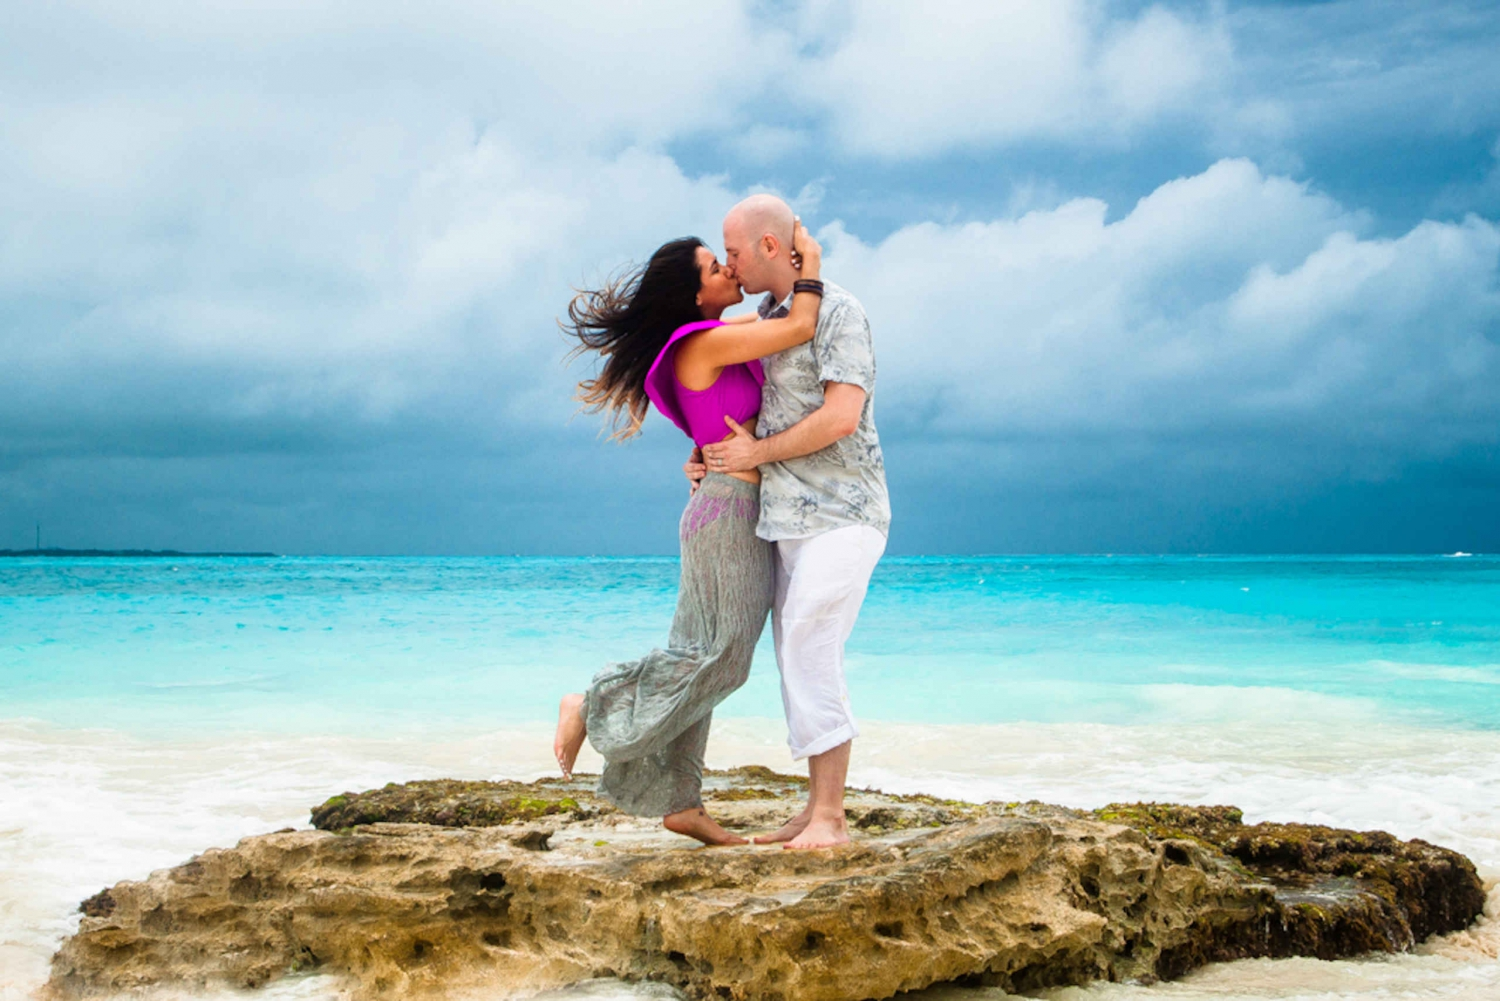 Cancun Private Photo Shoot for Couples and Families